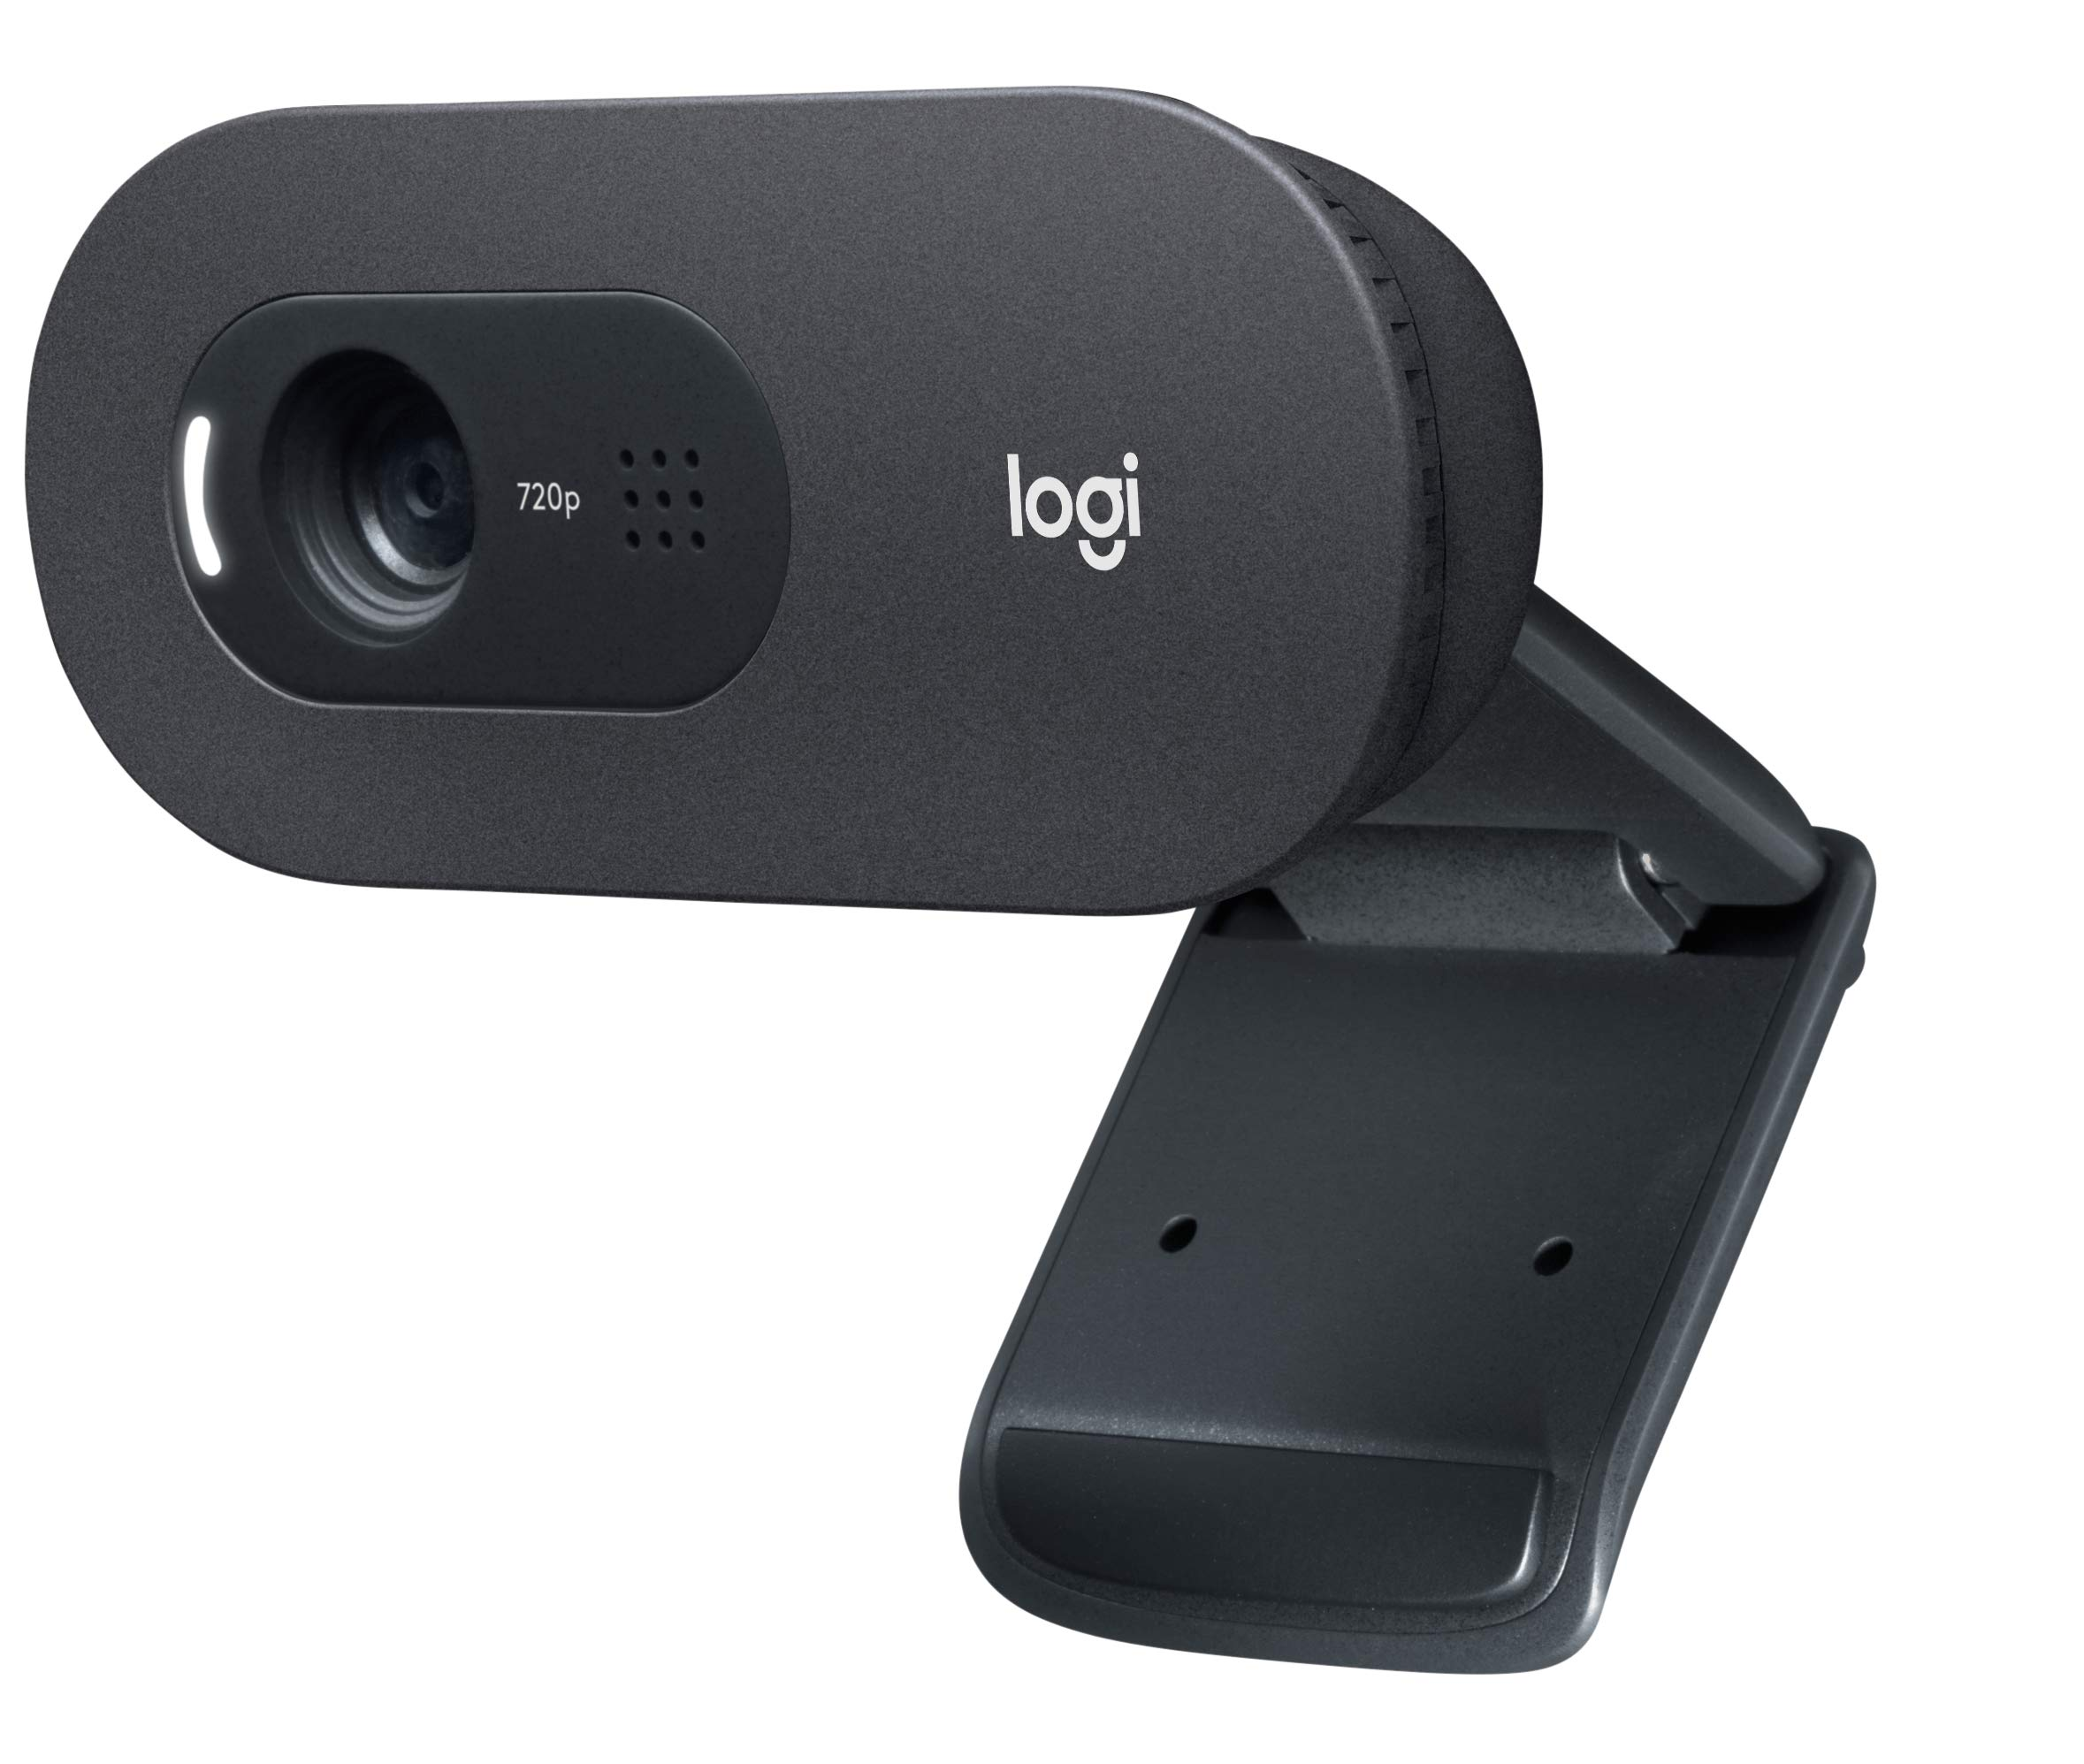 Logitech C270 Widescreen HD Webcam and 3 MP designed for HD Video Calling and Recording